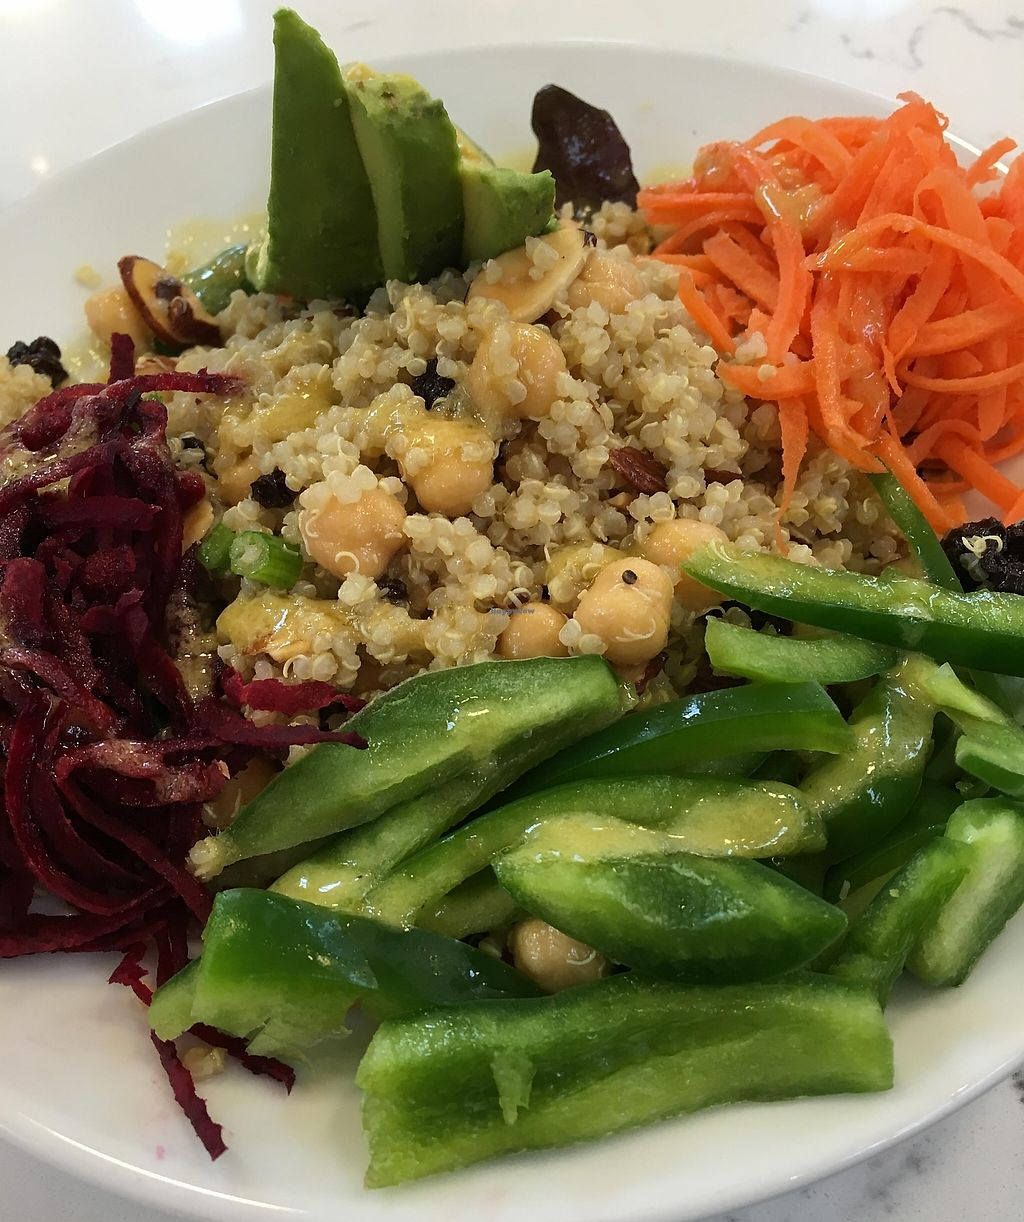 """Photo of Juice NOLA  by <a href=""""/members/profile/cookiem"""">cookiem</a> <br/>Quinoa salad- Rainbow Bowl <br/> March 31, 2016  - <a href='/contact/abuse/image/71493/201384'>Report</a>"""